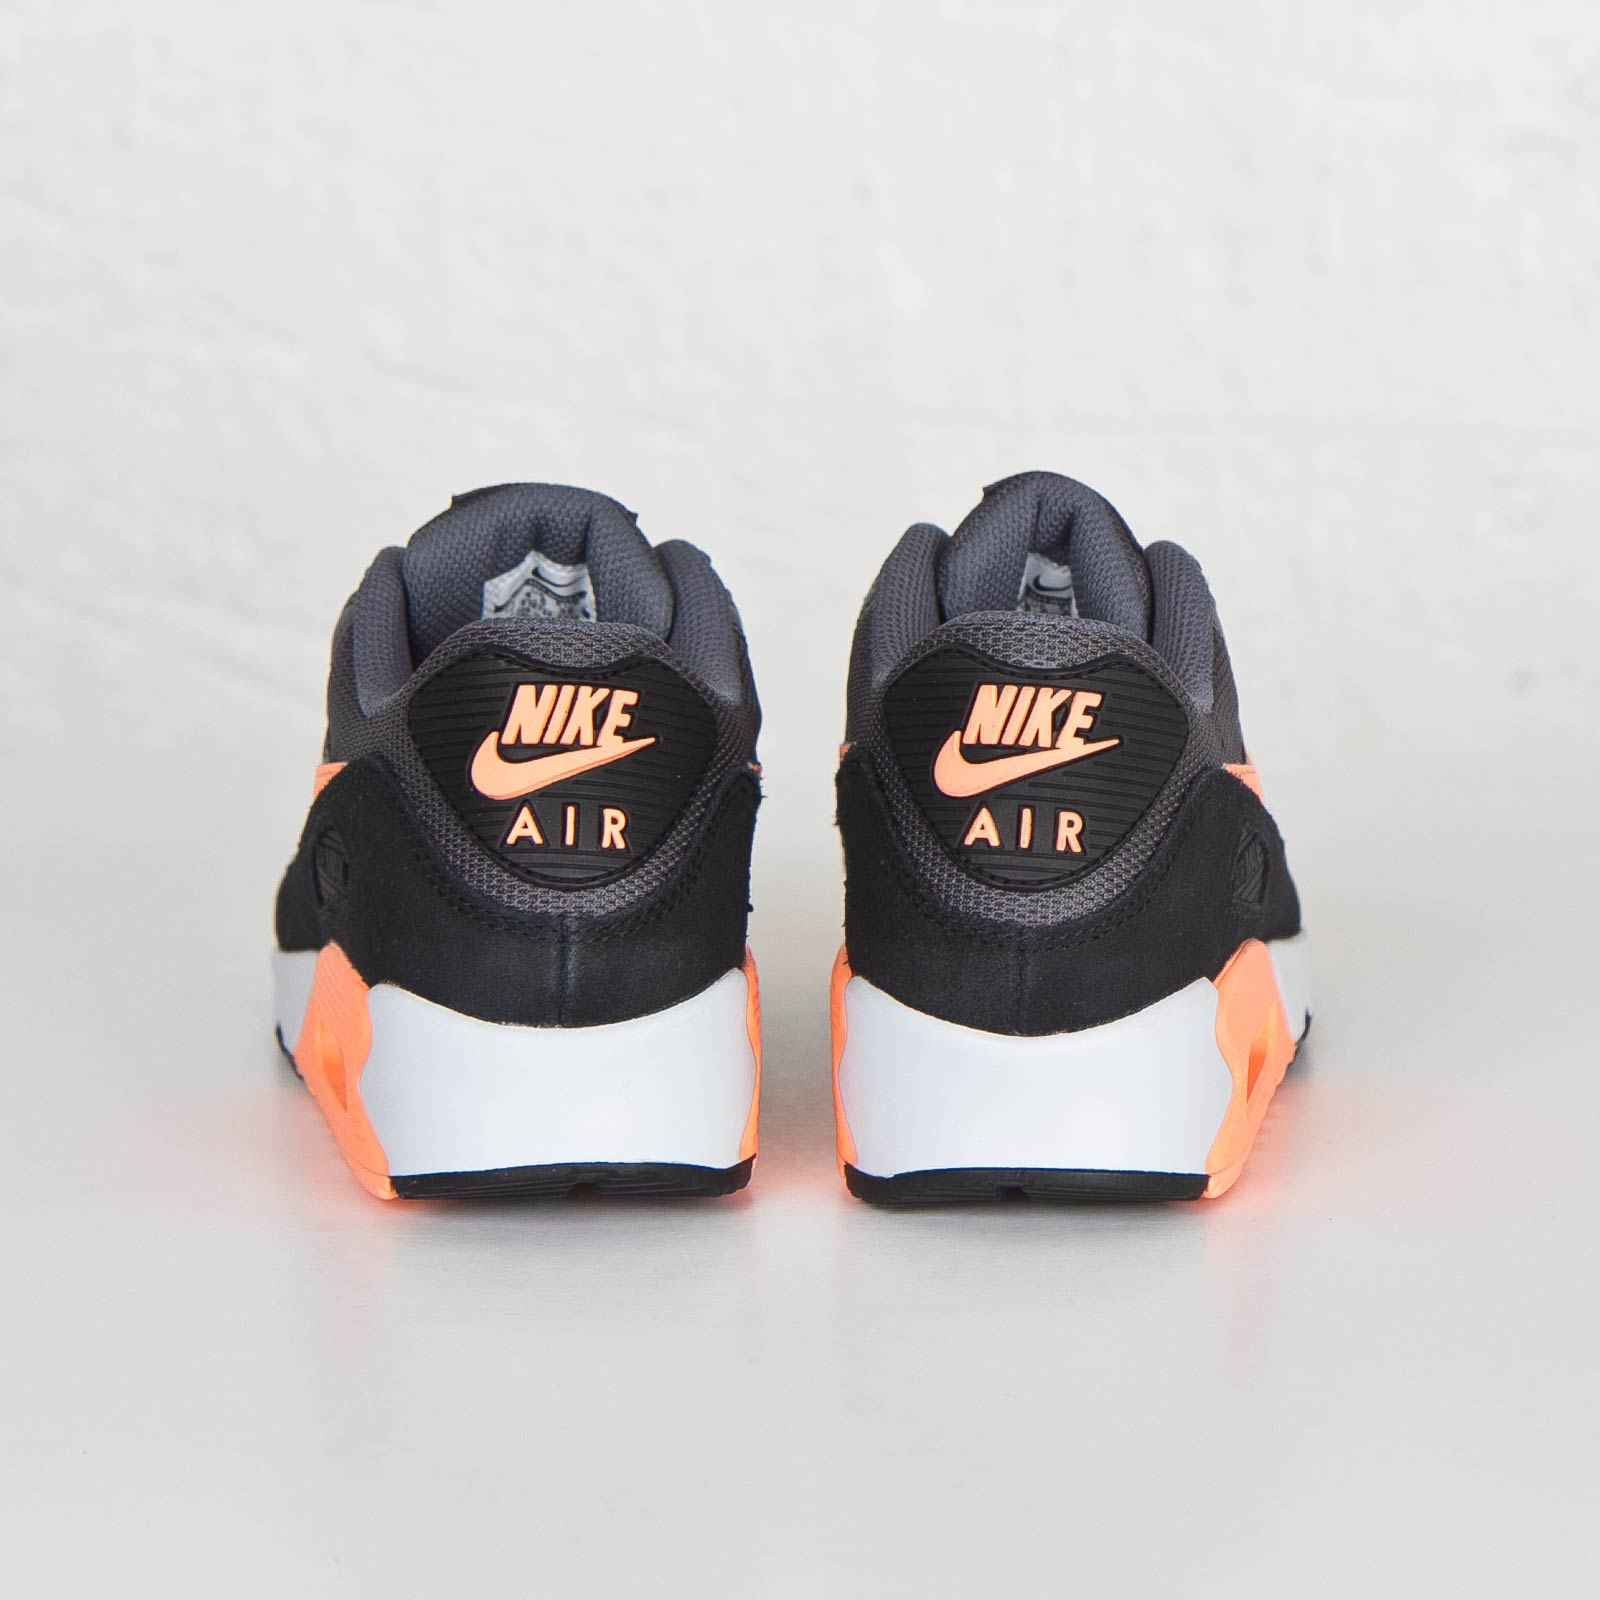 newest collection 39173 8f962 Nike Air Max 90 Essential - 616730-021 - Sneakersnstuff   sneakers    streetwear online since 1999